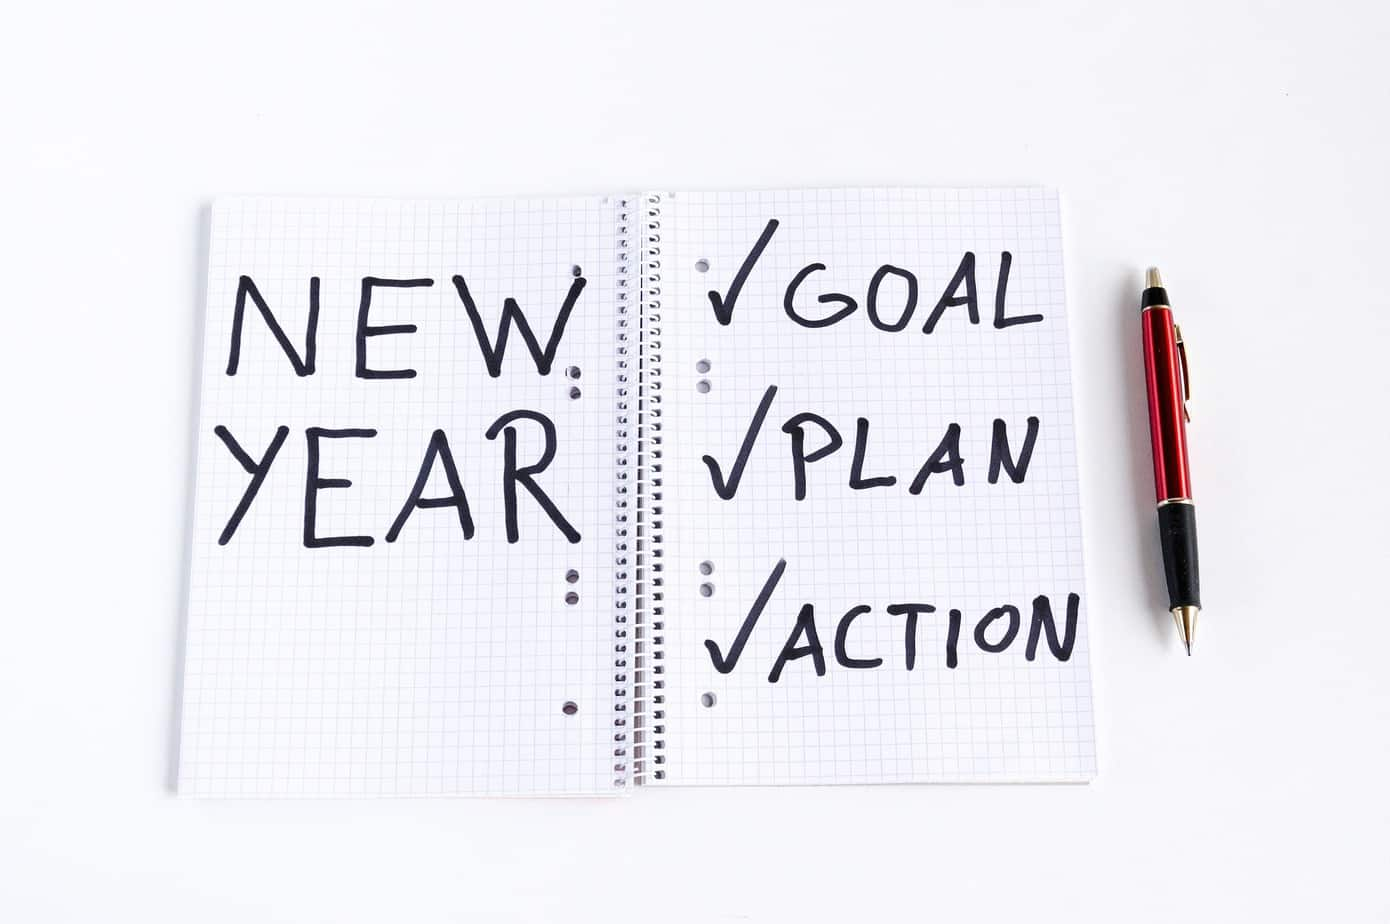 New Year Resolutions For Those Living With A Disability